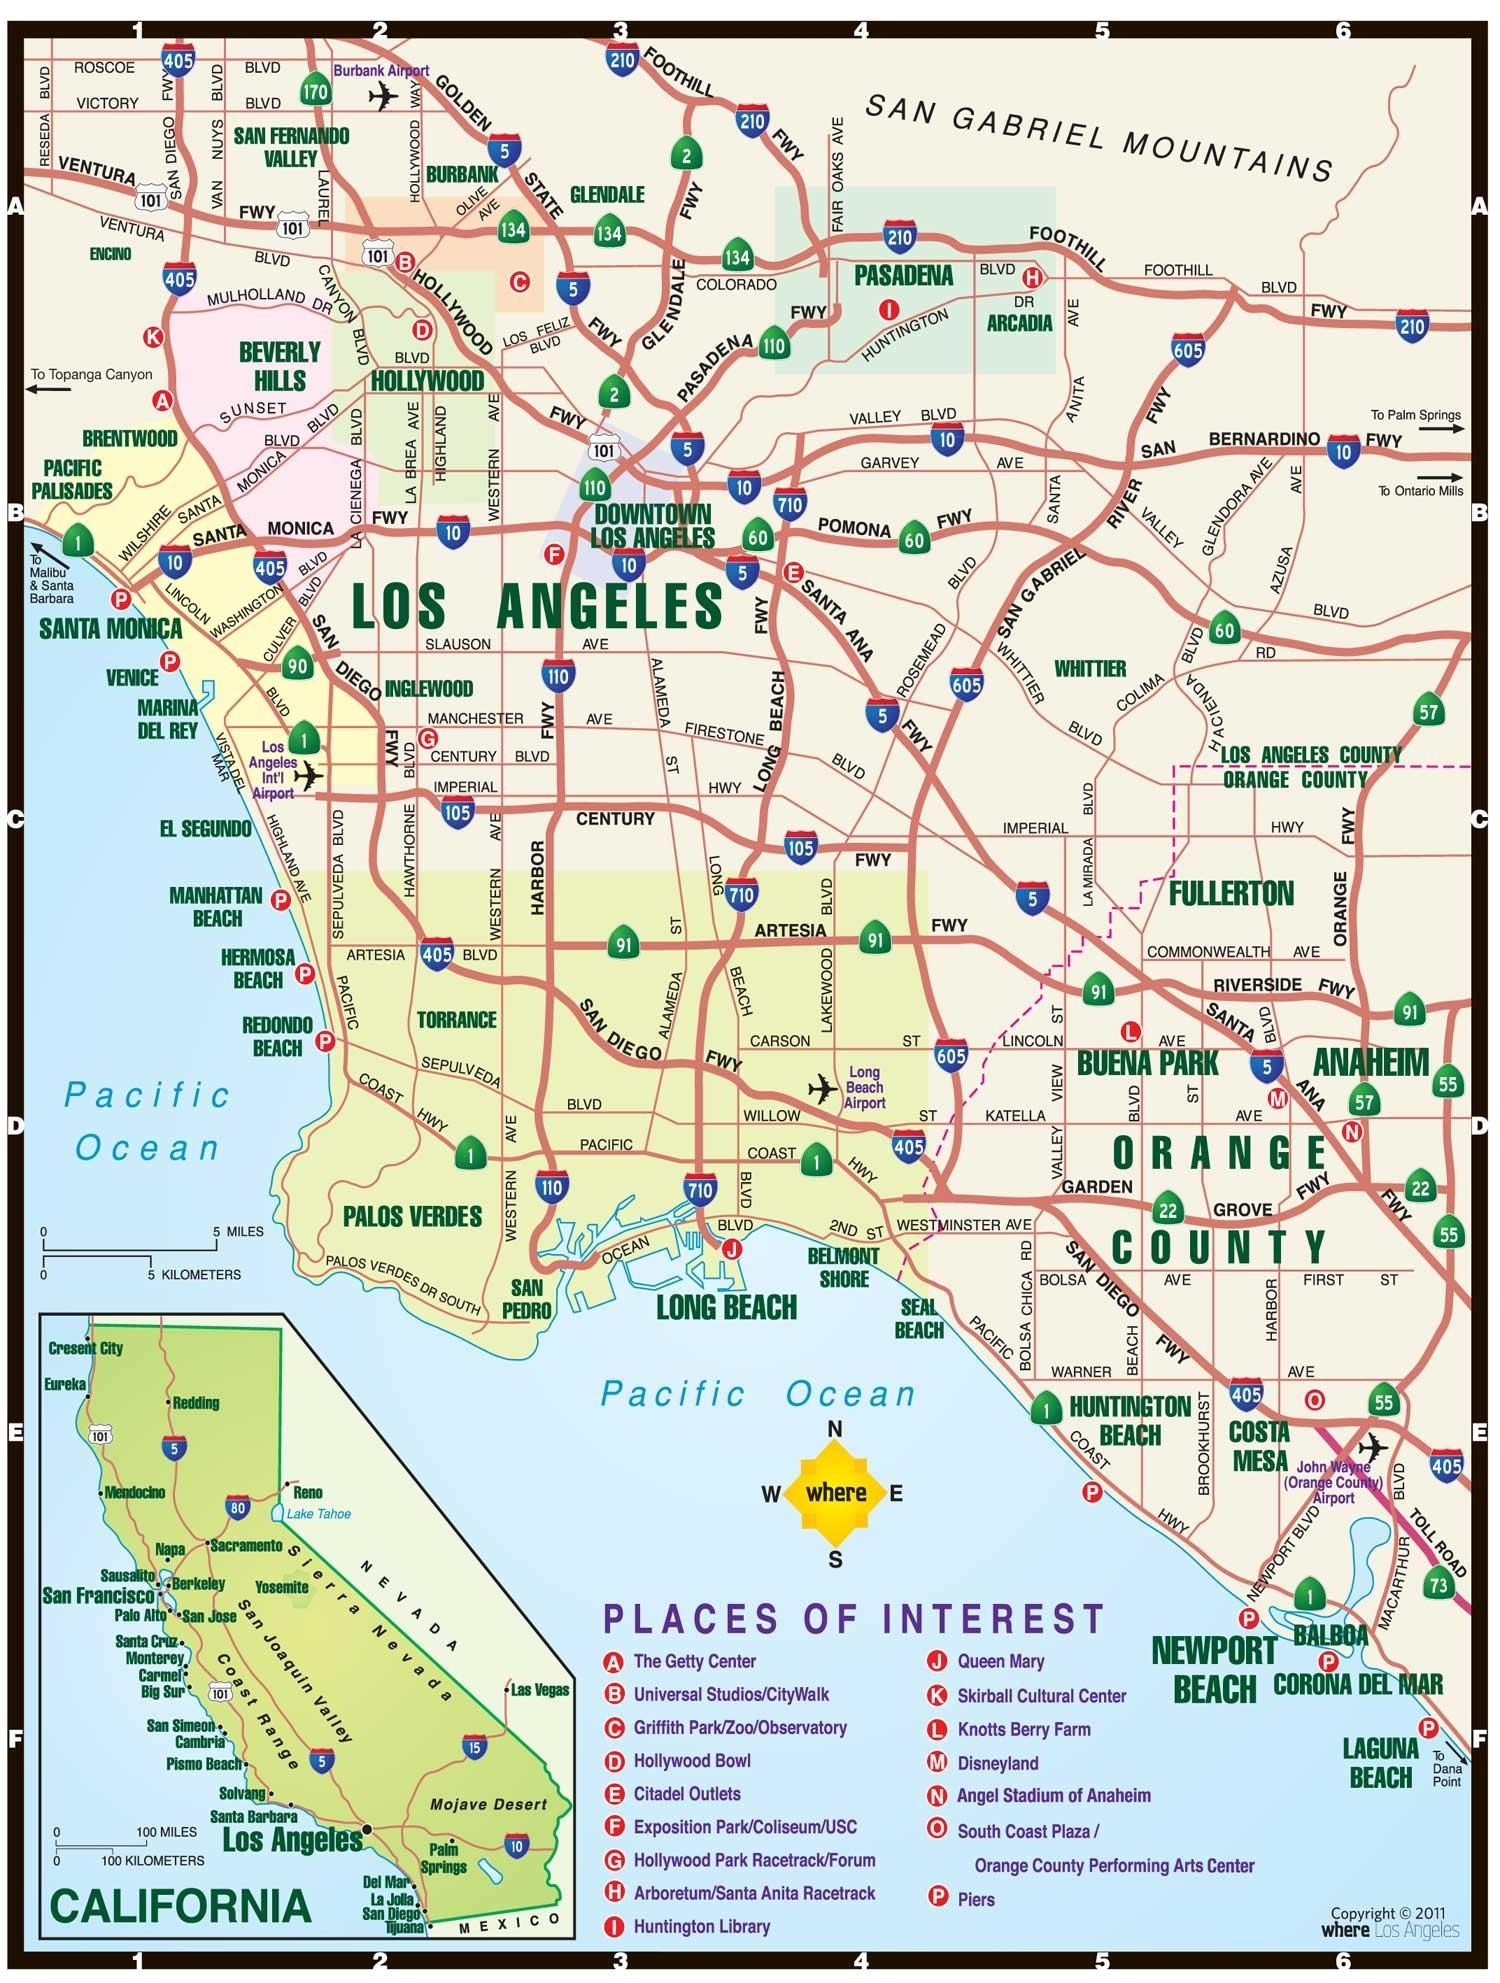 Los Angeles Toll Roads Map - Map Of Los Angeles Toll Roads for California Toll Roads Near Los Angeles